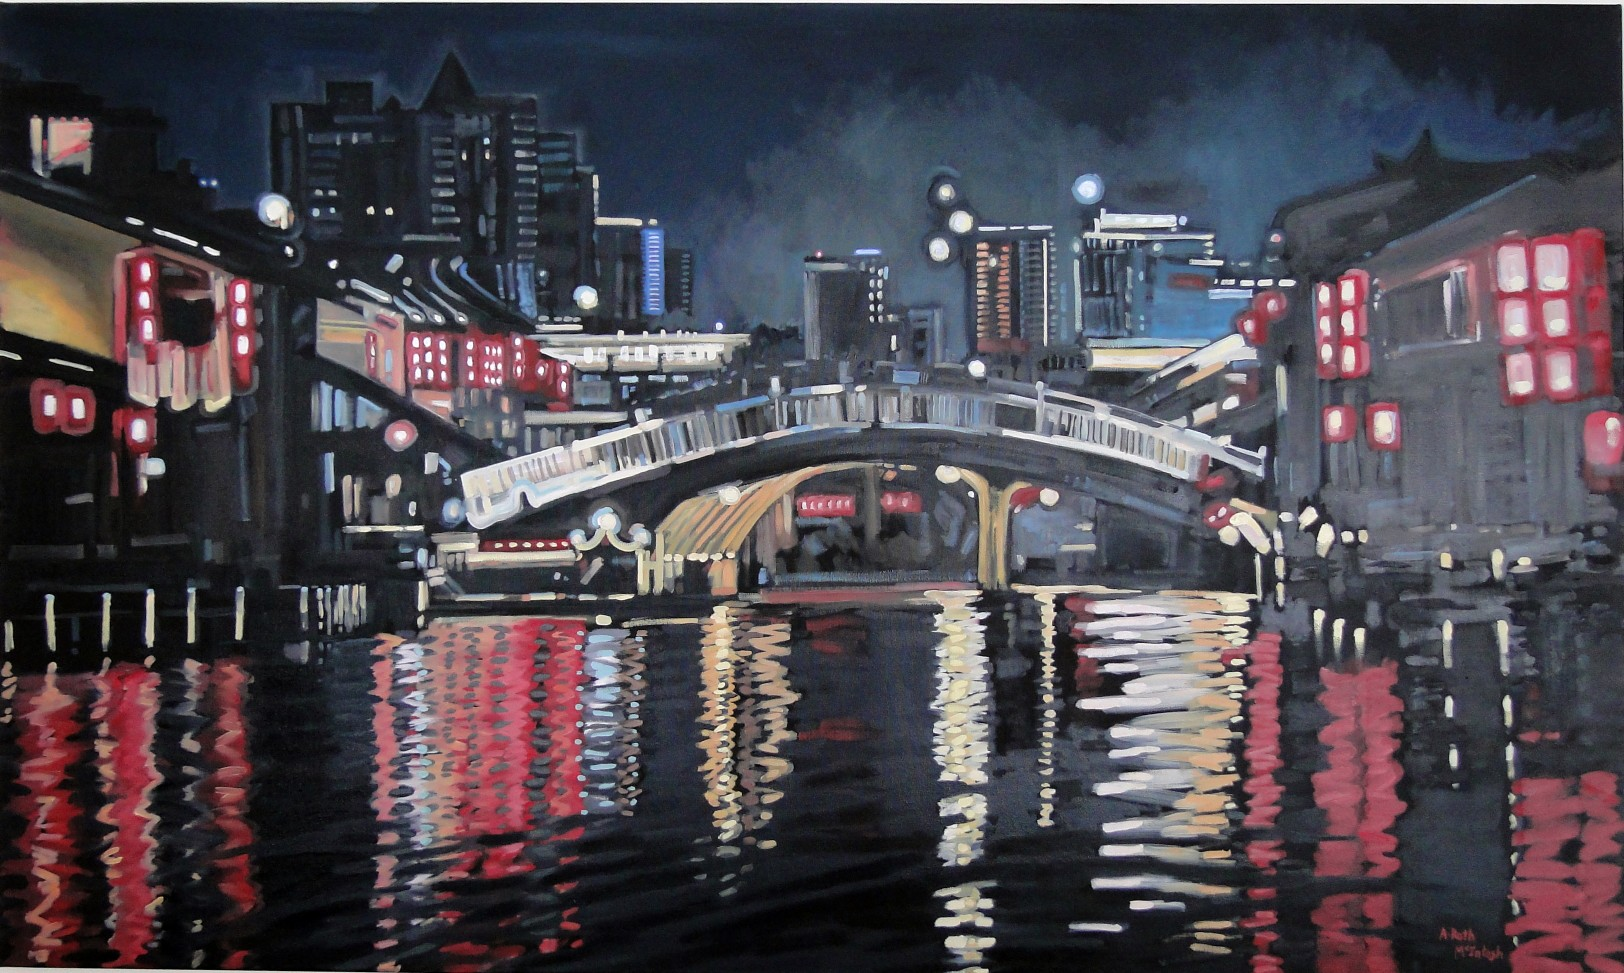 Completed painting Amazing                                         night lights in Wuxi China